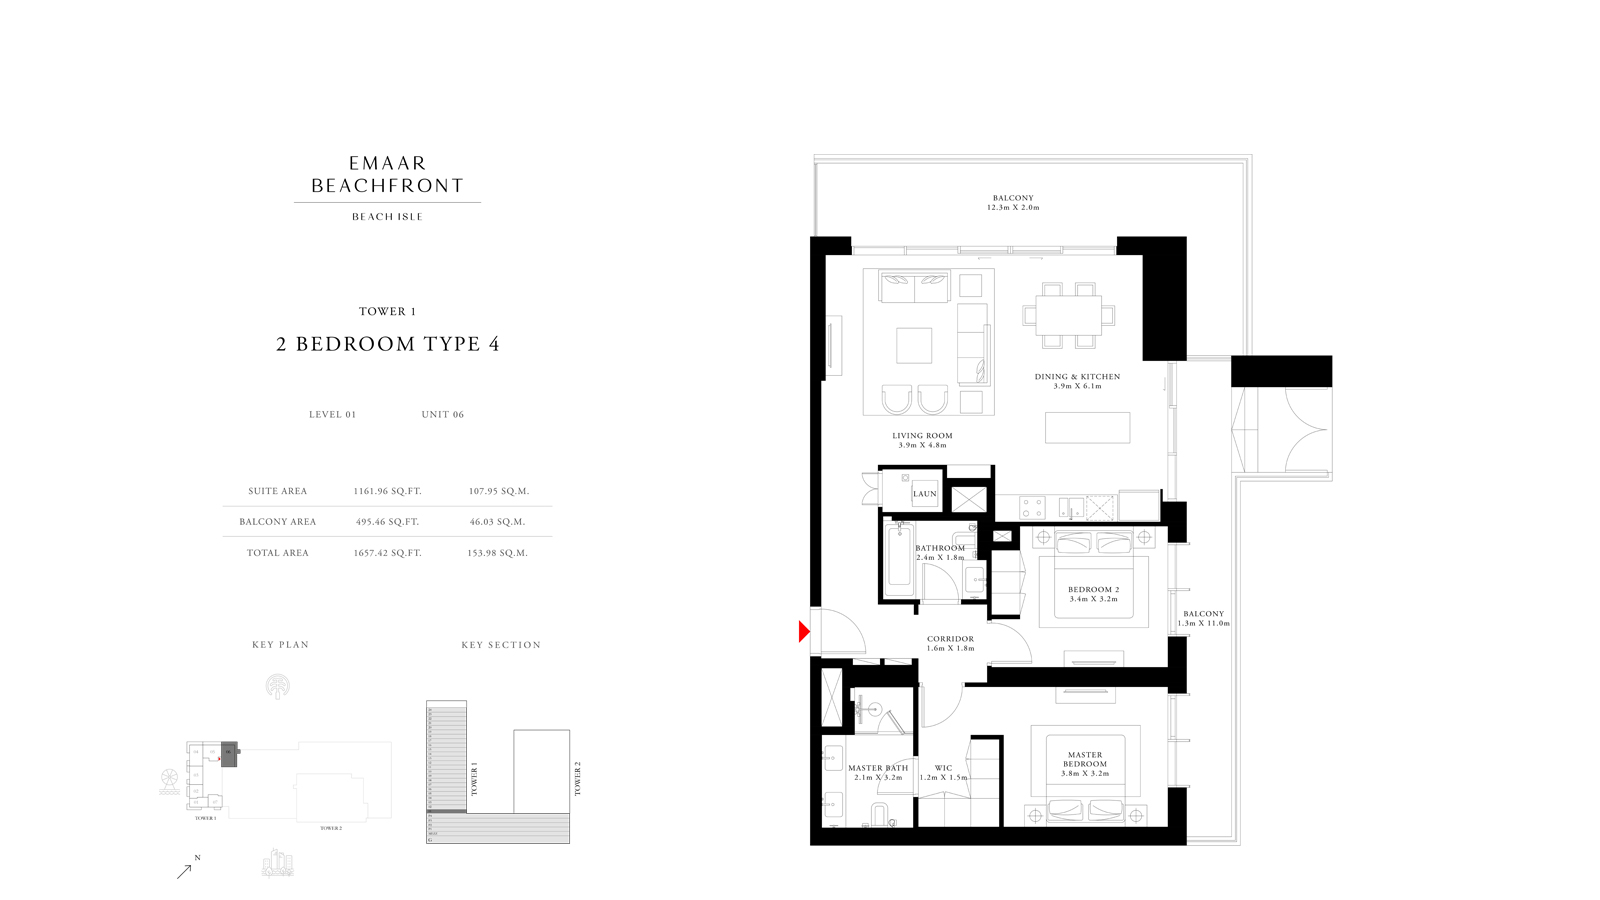 2 Bedroom Type 4 Tower 1, Size 1657    sq. ft.